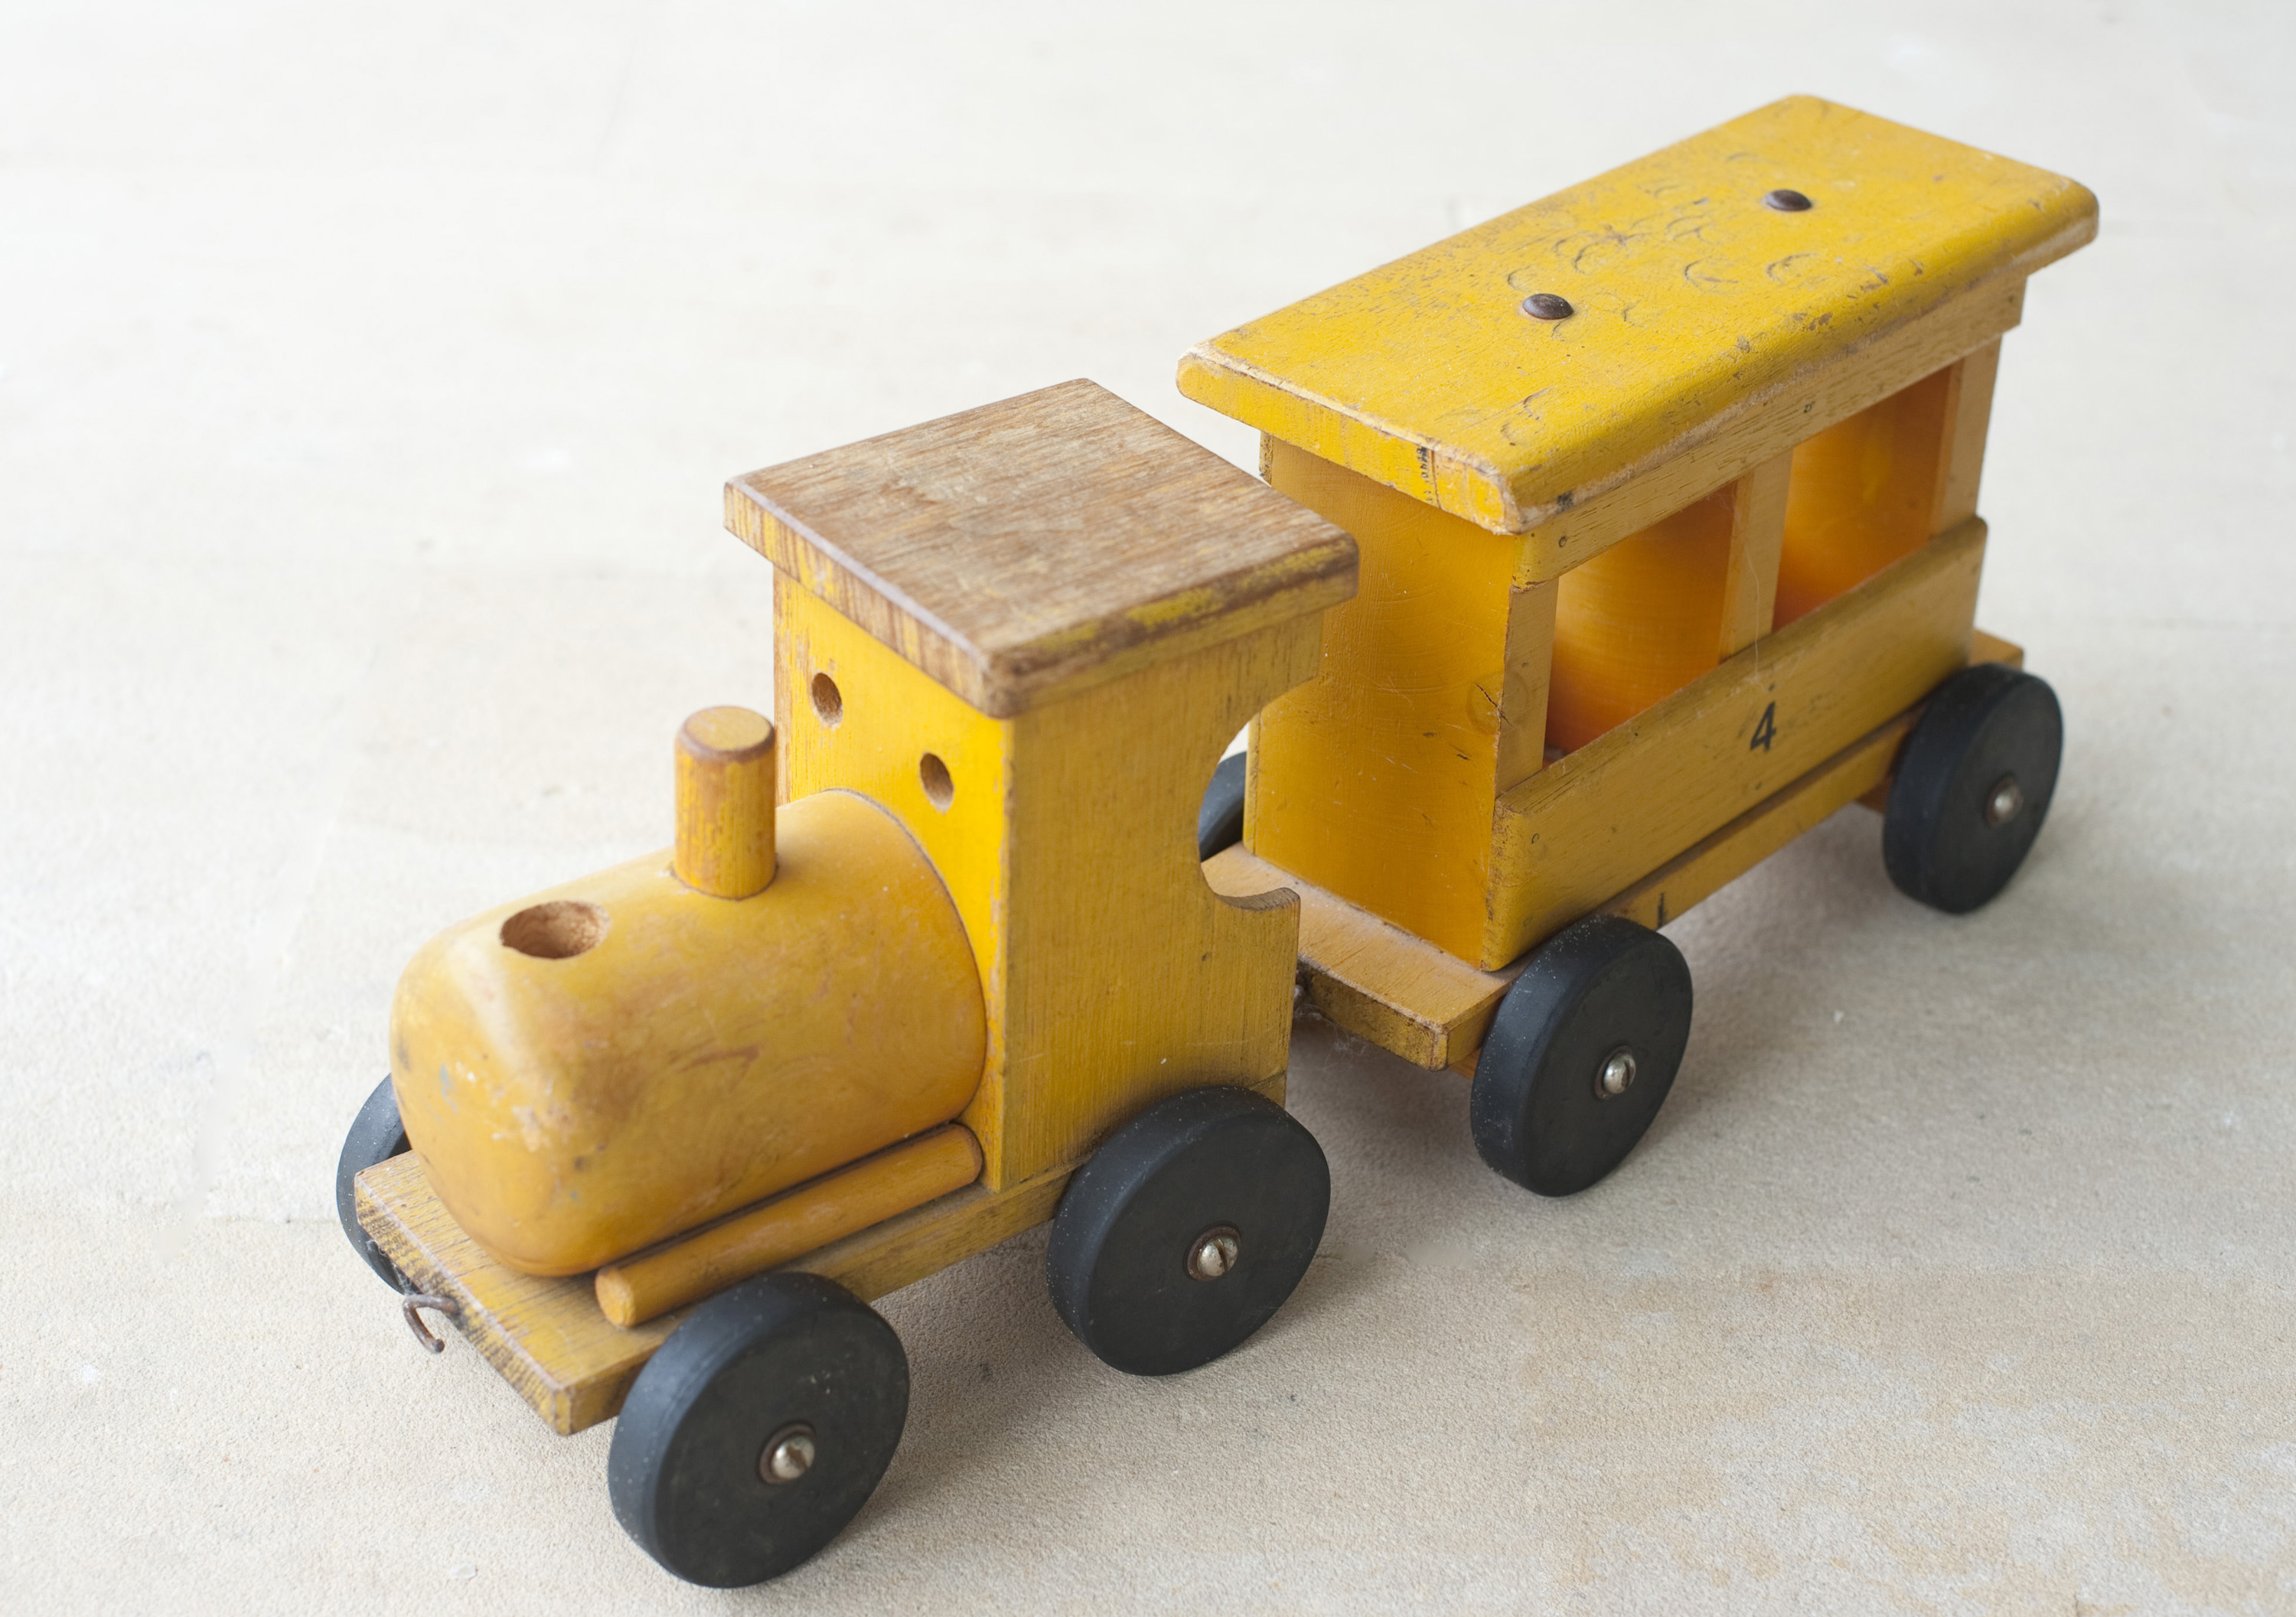 Small wooden toy train ornament to decorate a Christmas arrangement or tree